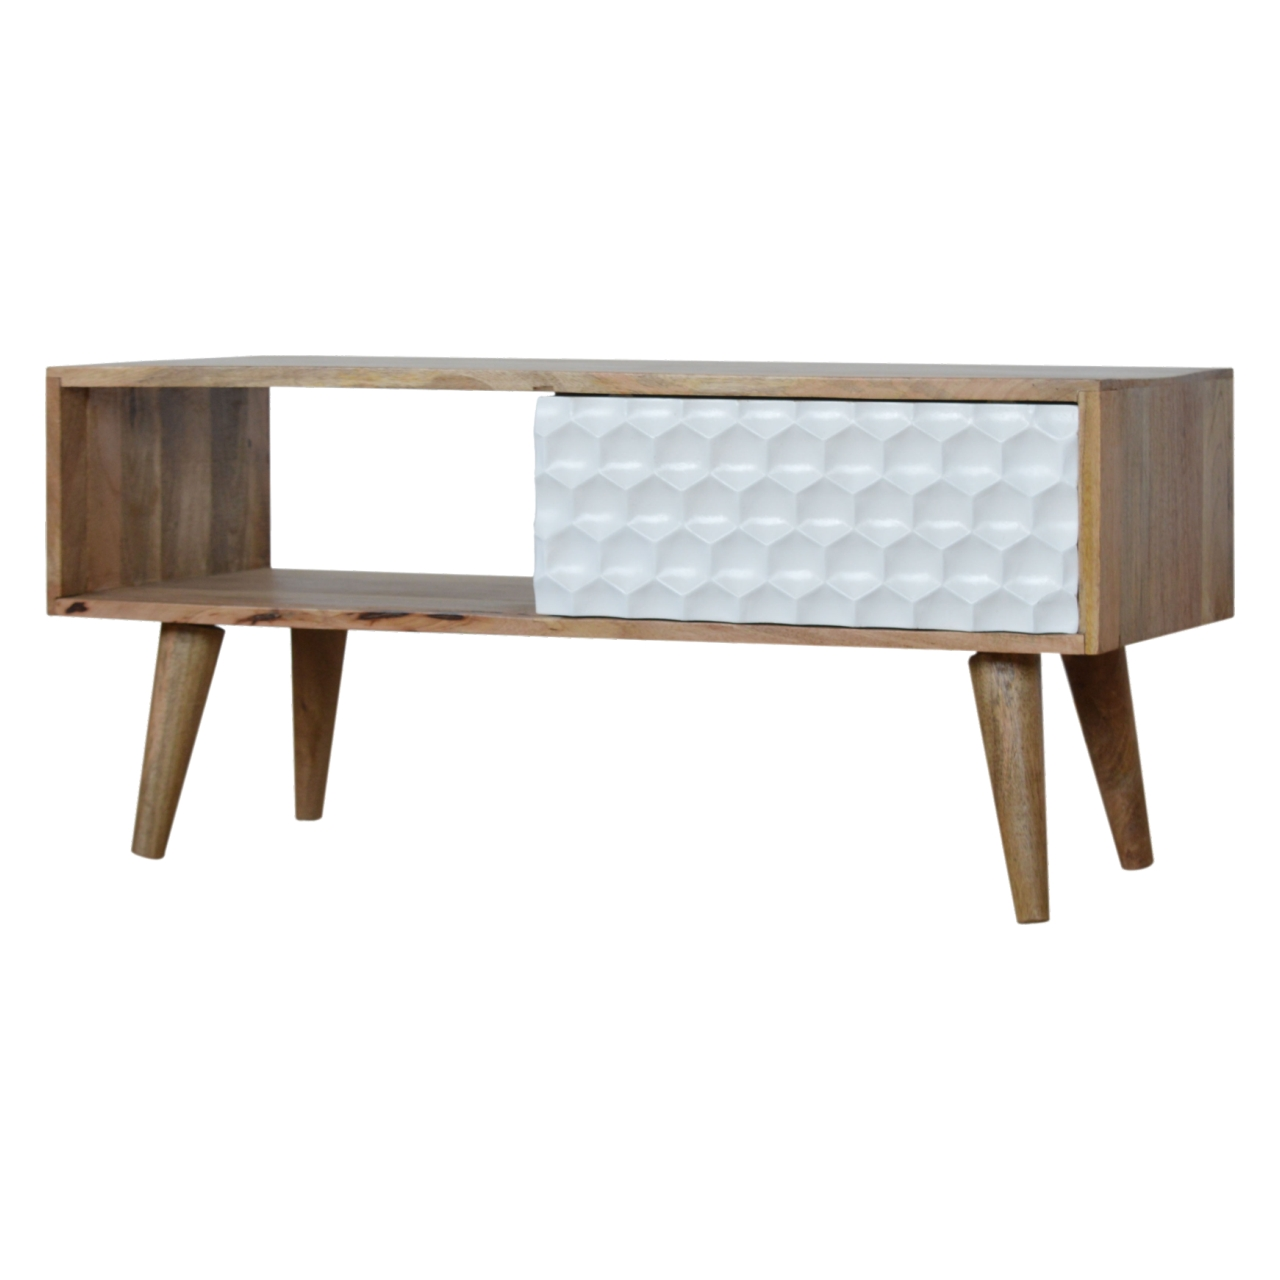 - Honeycomb Carved Coffee Table - Nordic Artisan